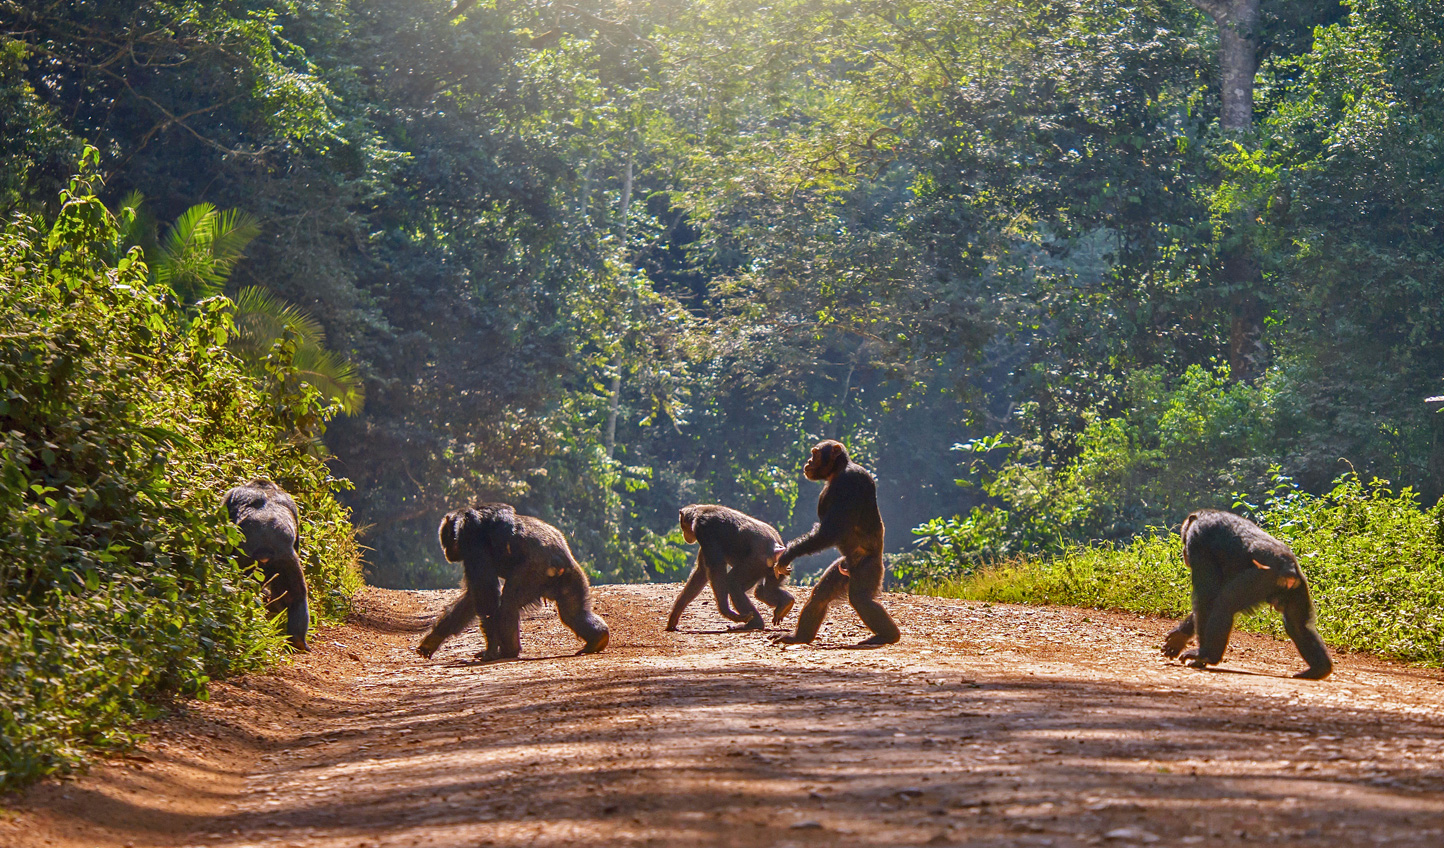 Walk with gorillas, chimpanzees, monkeys and more through Rwanda and Uganda